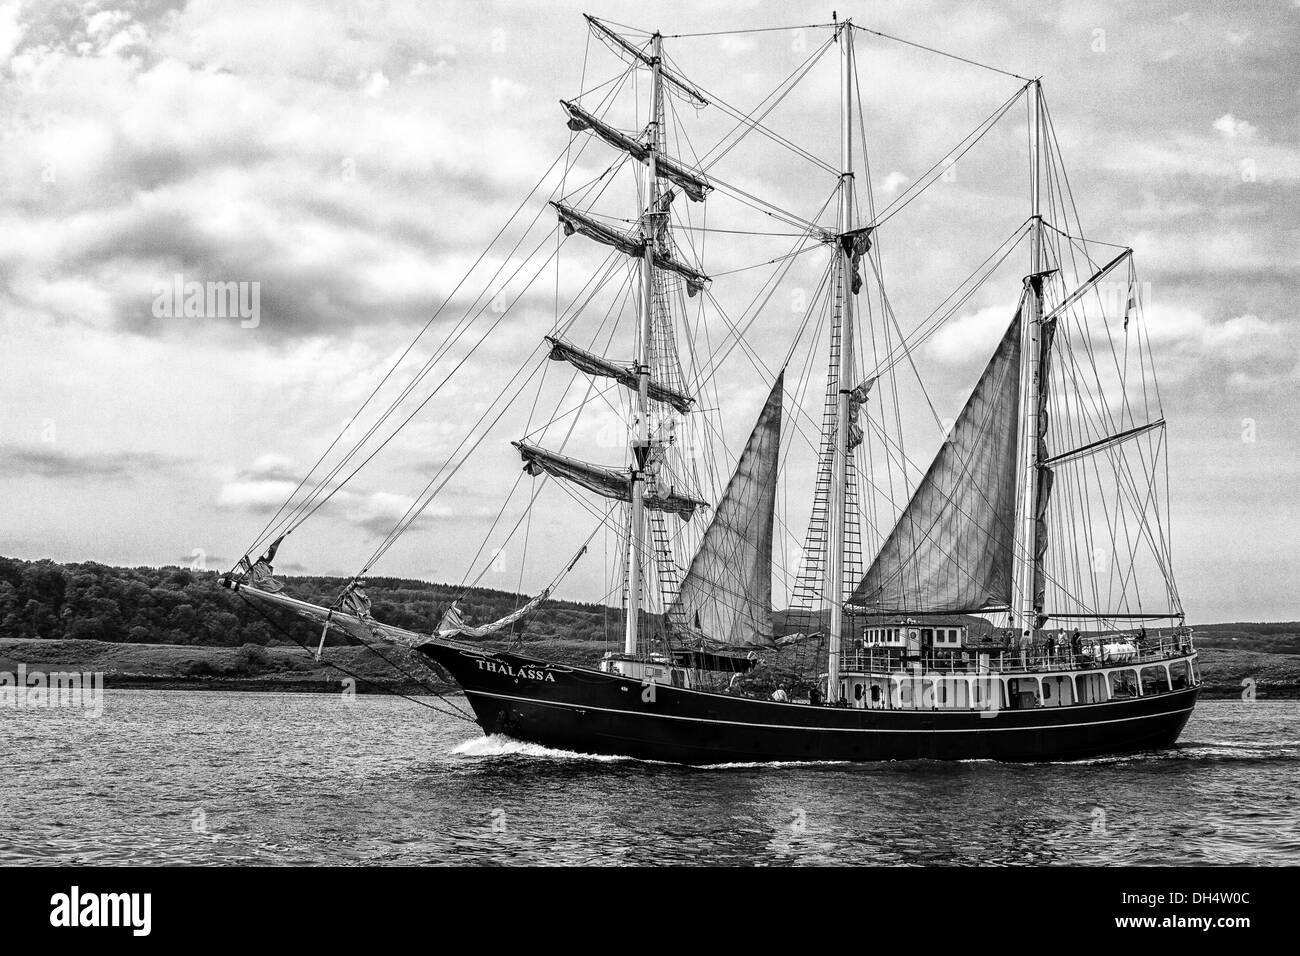 Tall Ship Thalassa in the Sound Of Mull - Stock Image